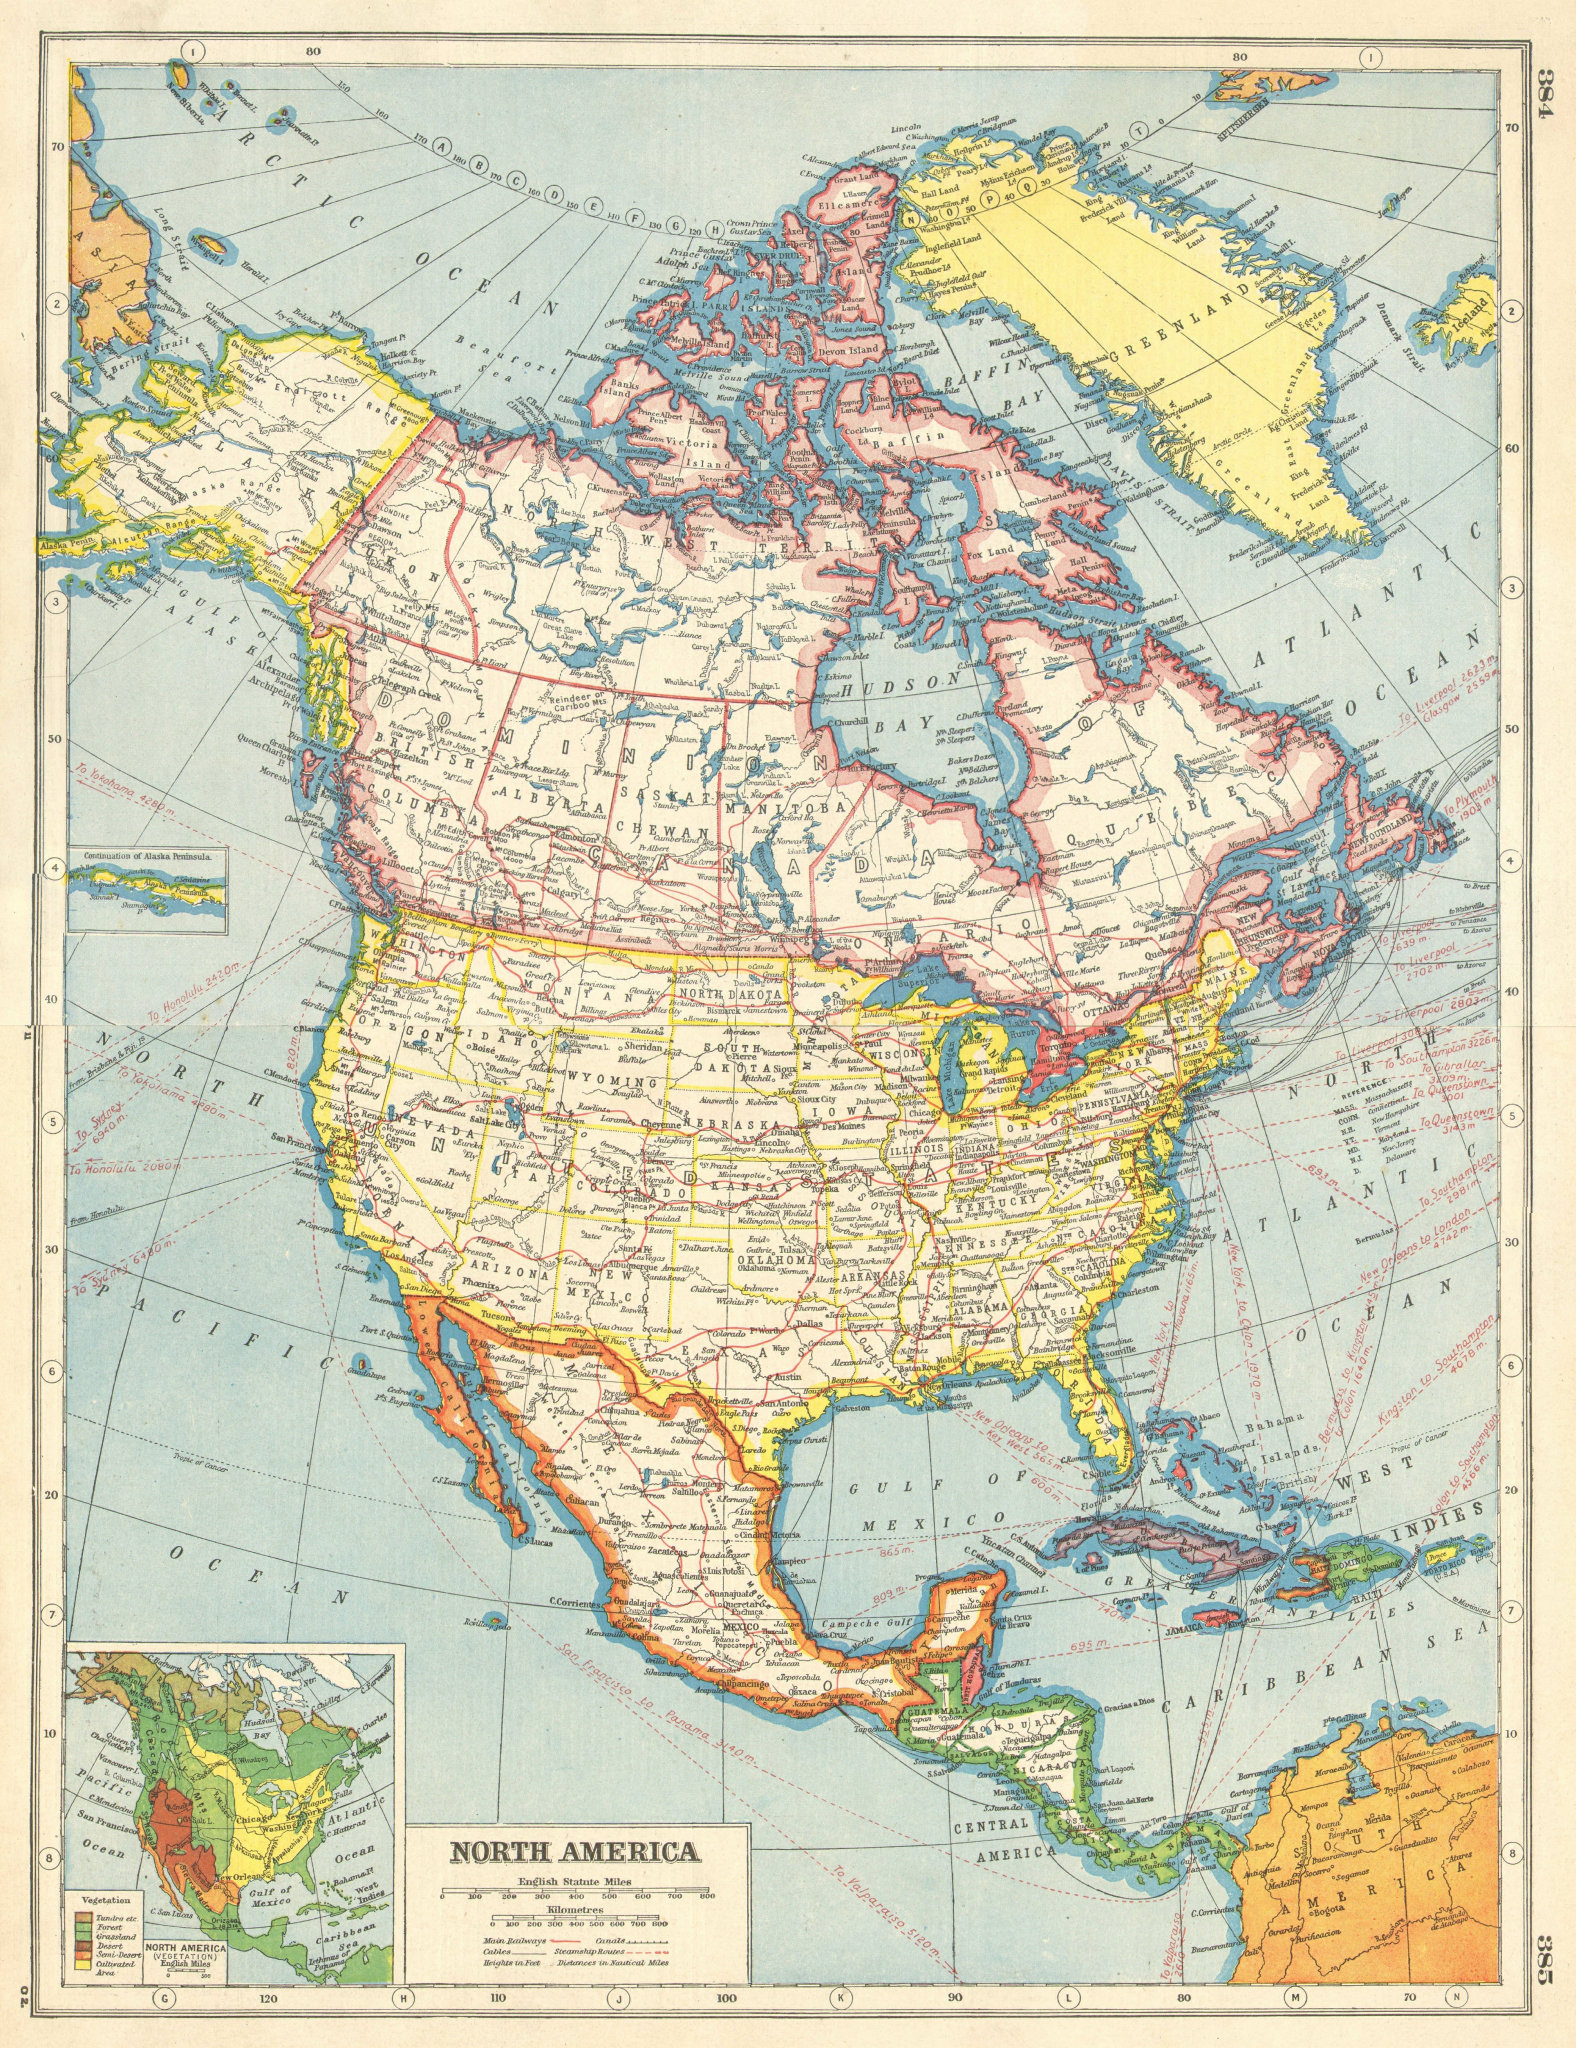 Associate Product NORTH AMERICA. Canada provinces. US states. Mexico. Inset Vegetation 1920 map